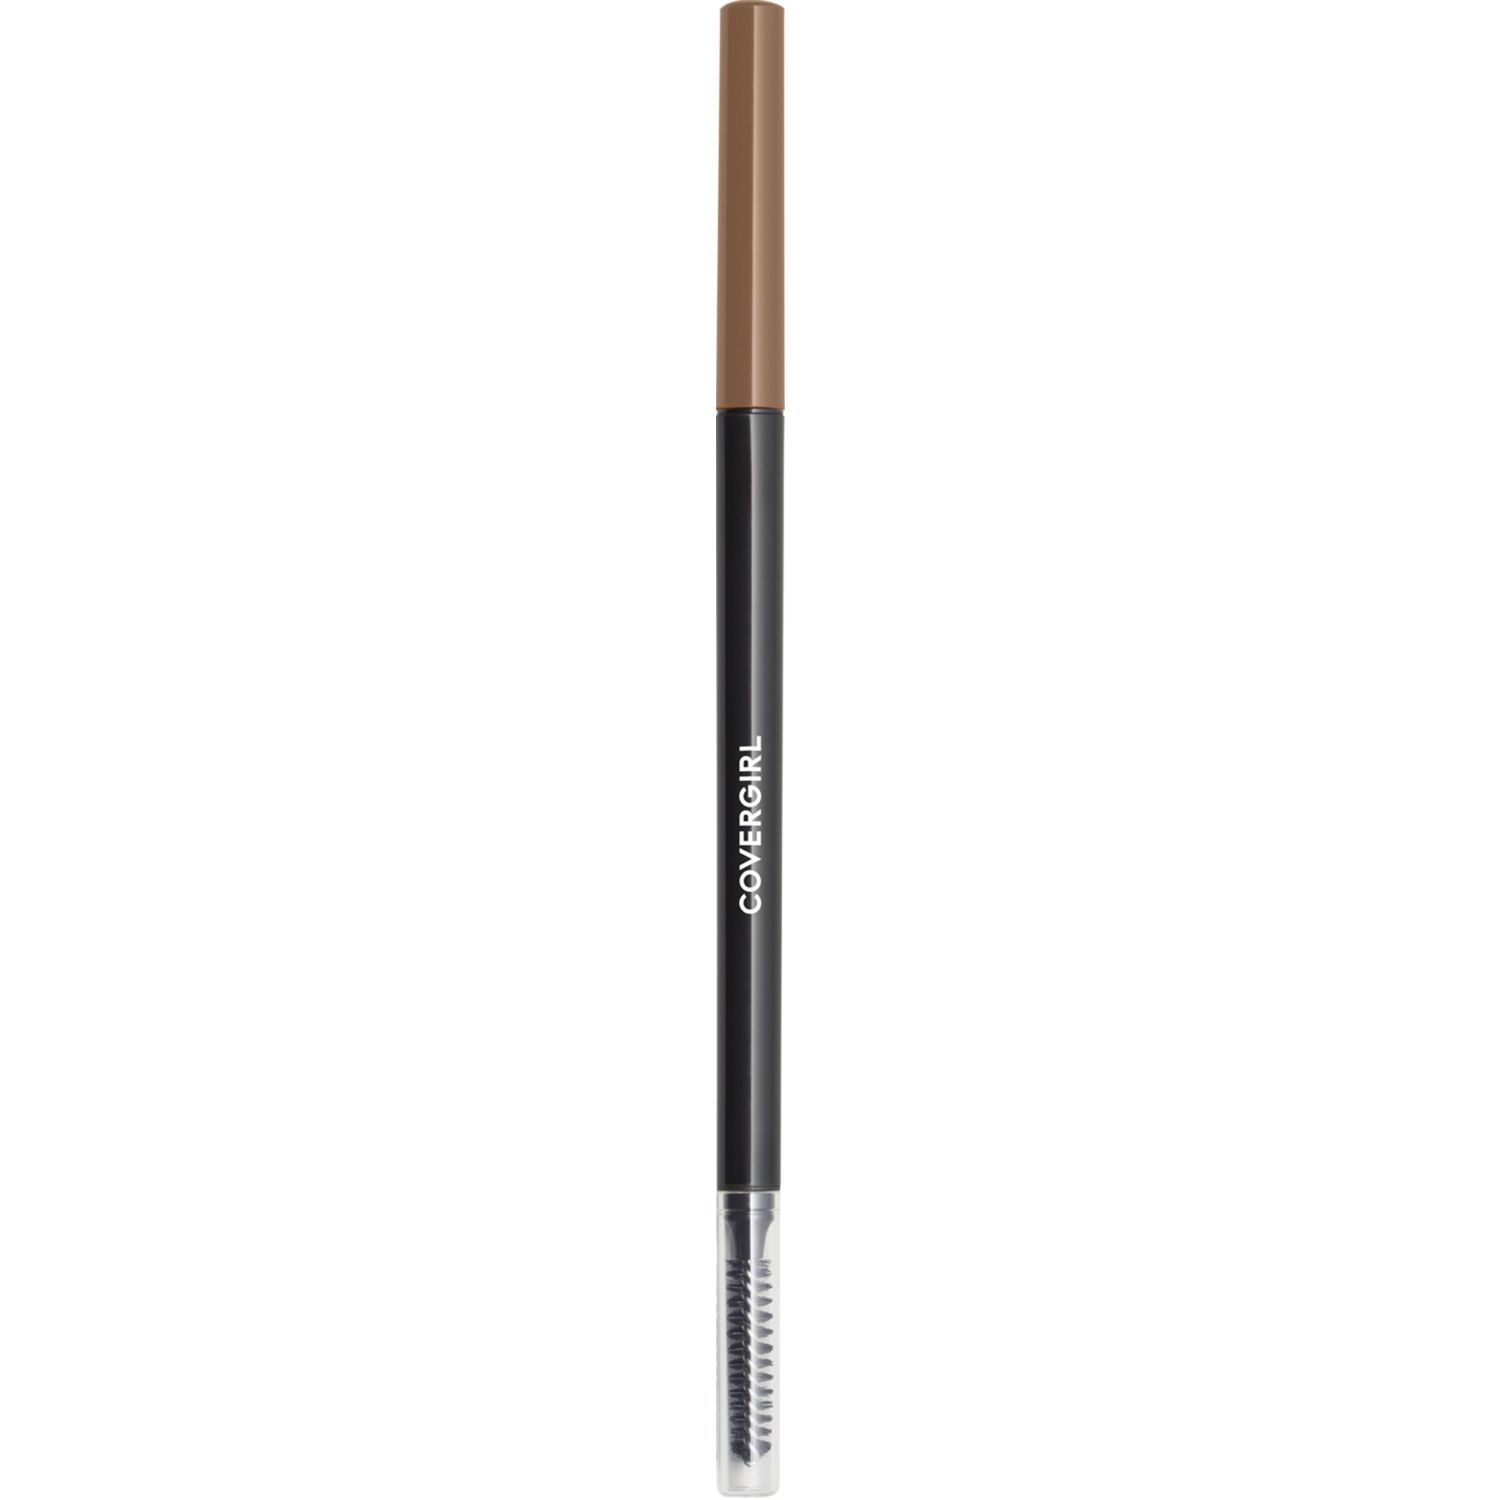 Covergirl Brow Micro Fine Fill Define Brow Pencil SOFT BROWN 710 Combinaciones de Sombra y Delineador